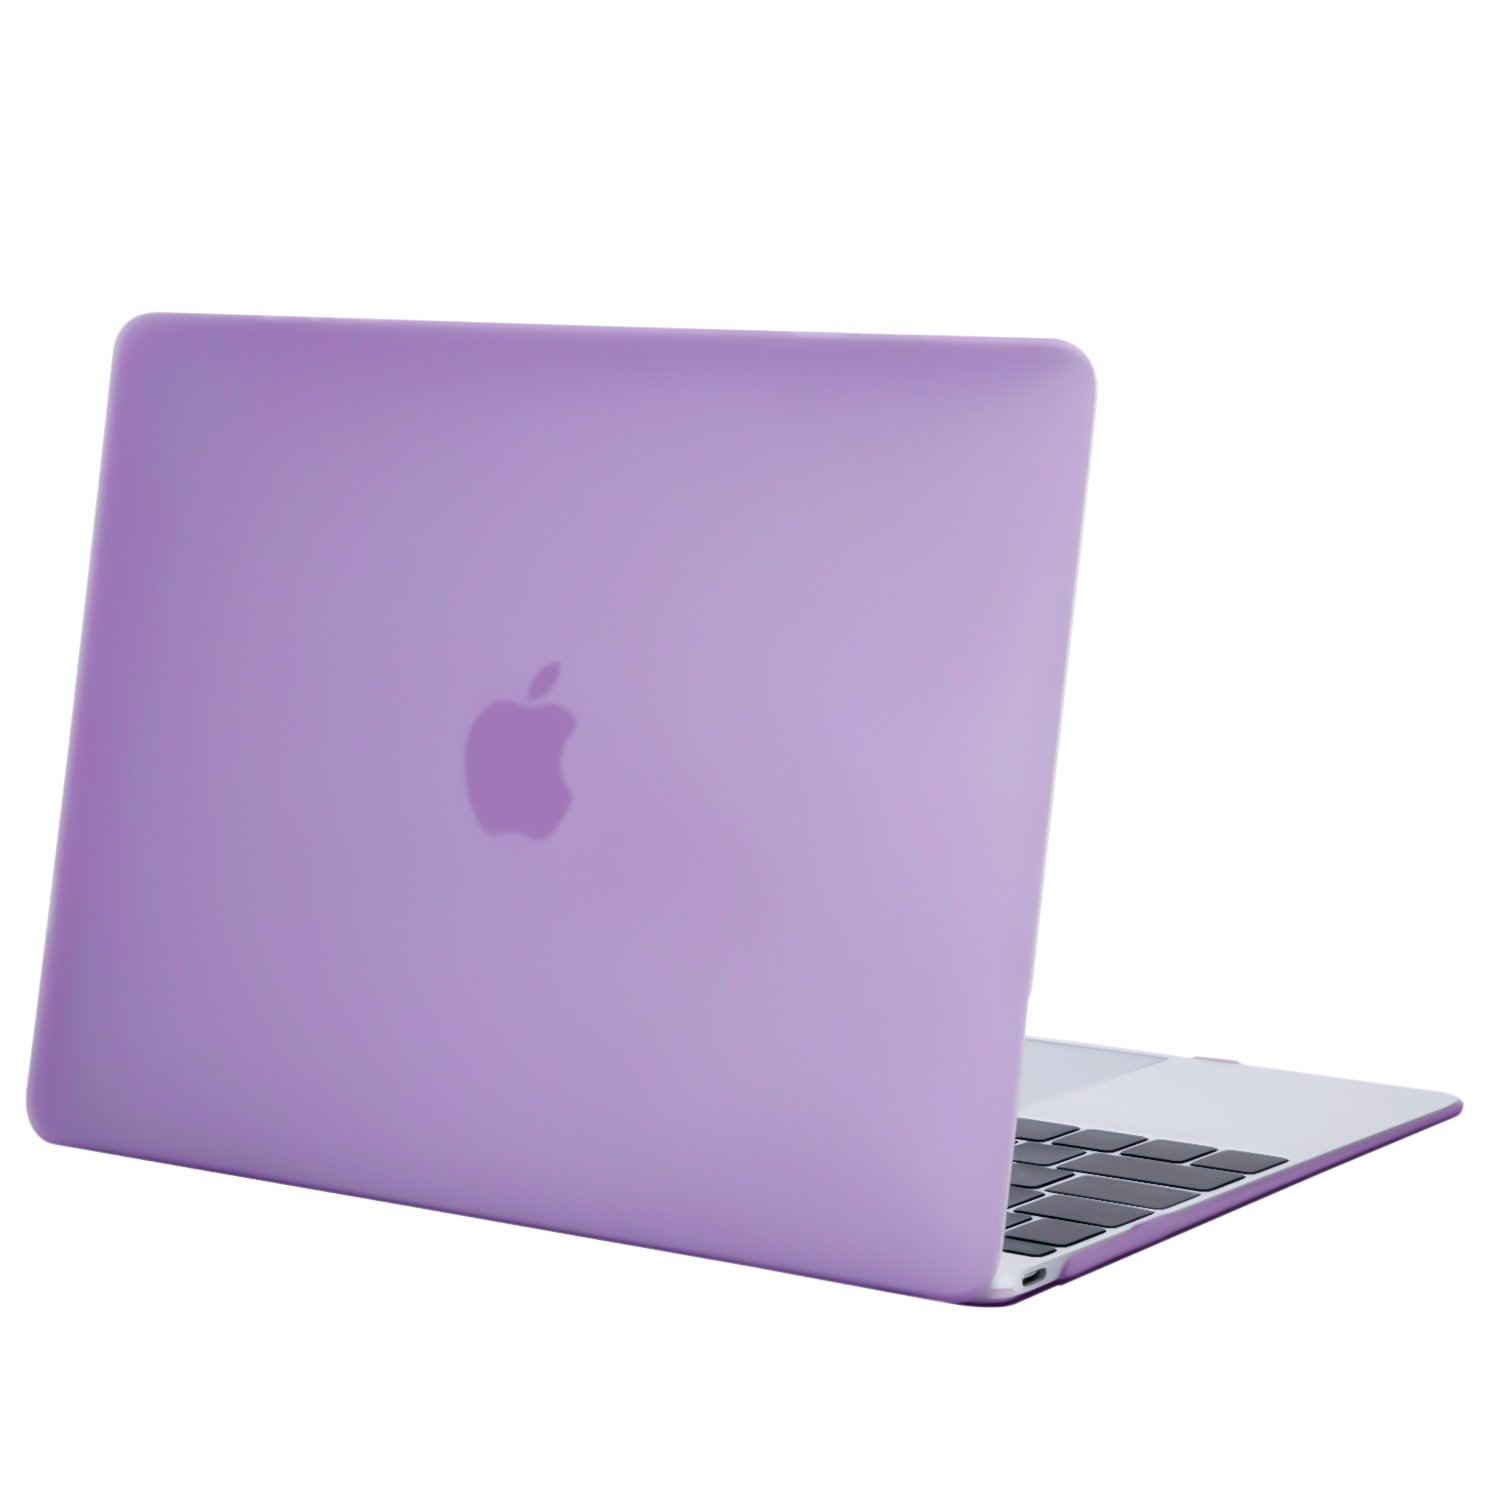 CODEGEN 12 MACBOOK SERT KILIF MOR CM-120PU